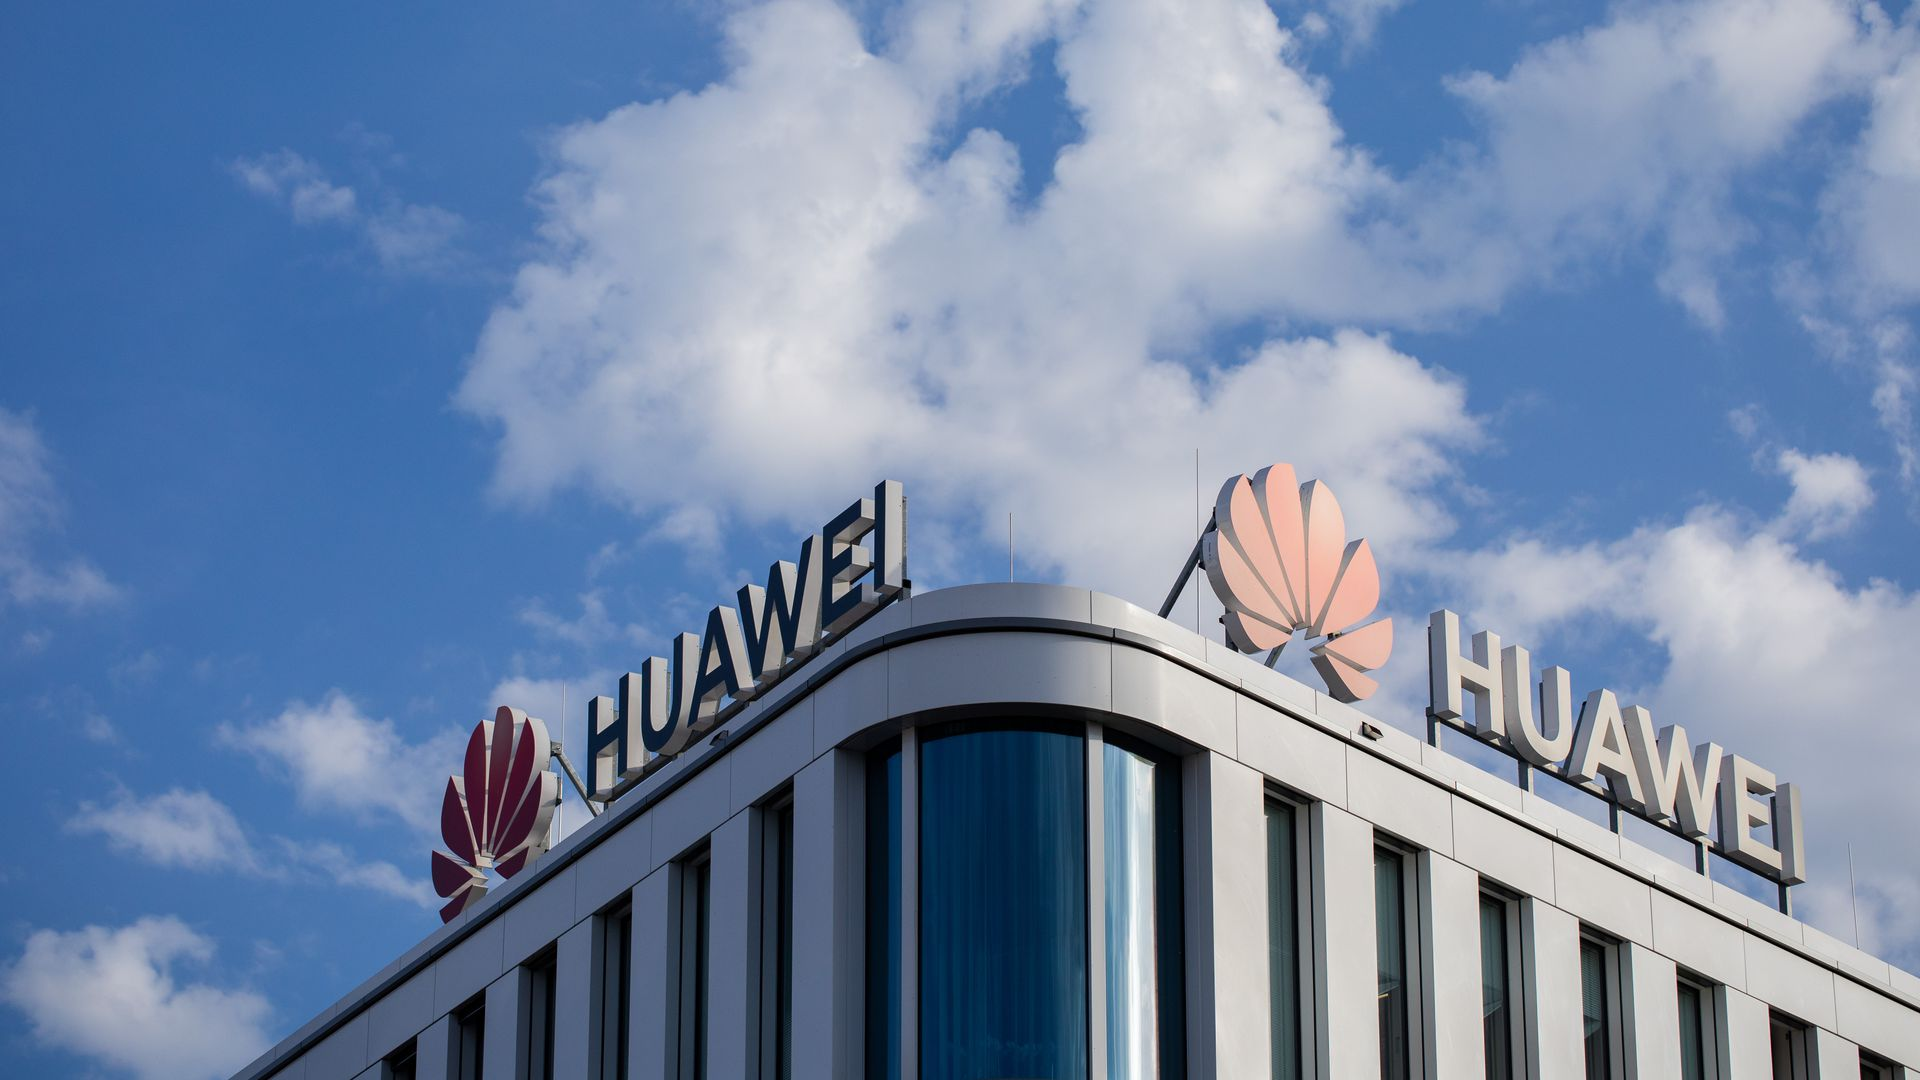 This image shows a rooftop with two Huawei logos on either side of its roof